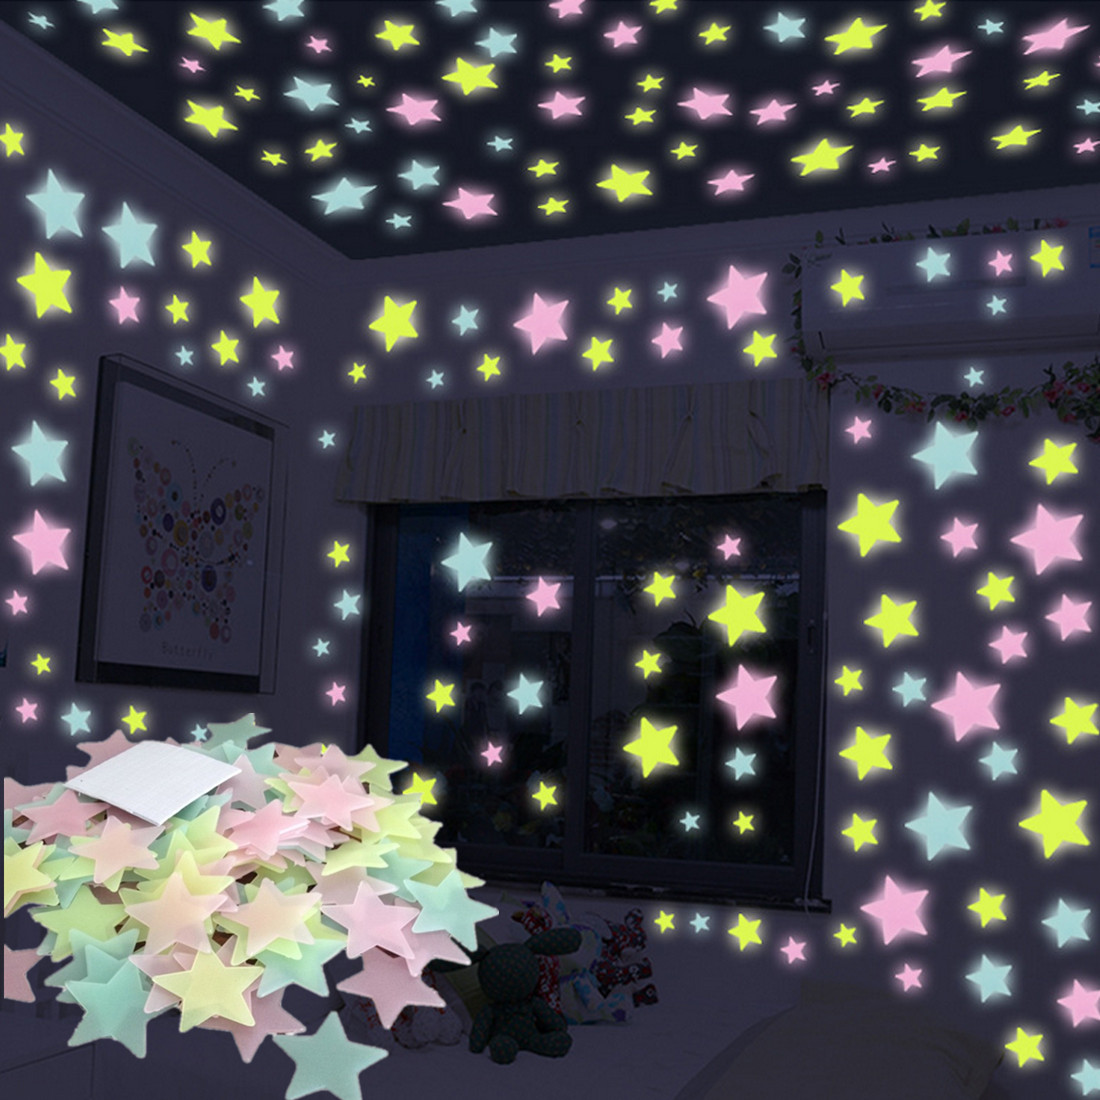 100pcs Night Luminous Stars Sticker Glow In The Dark  Wall Stickers Child of Light for Kids Bedroom Decor Xmas Halloween Gift